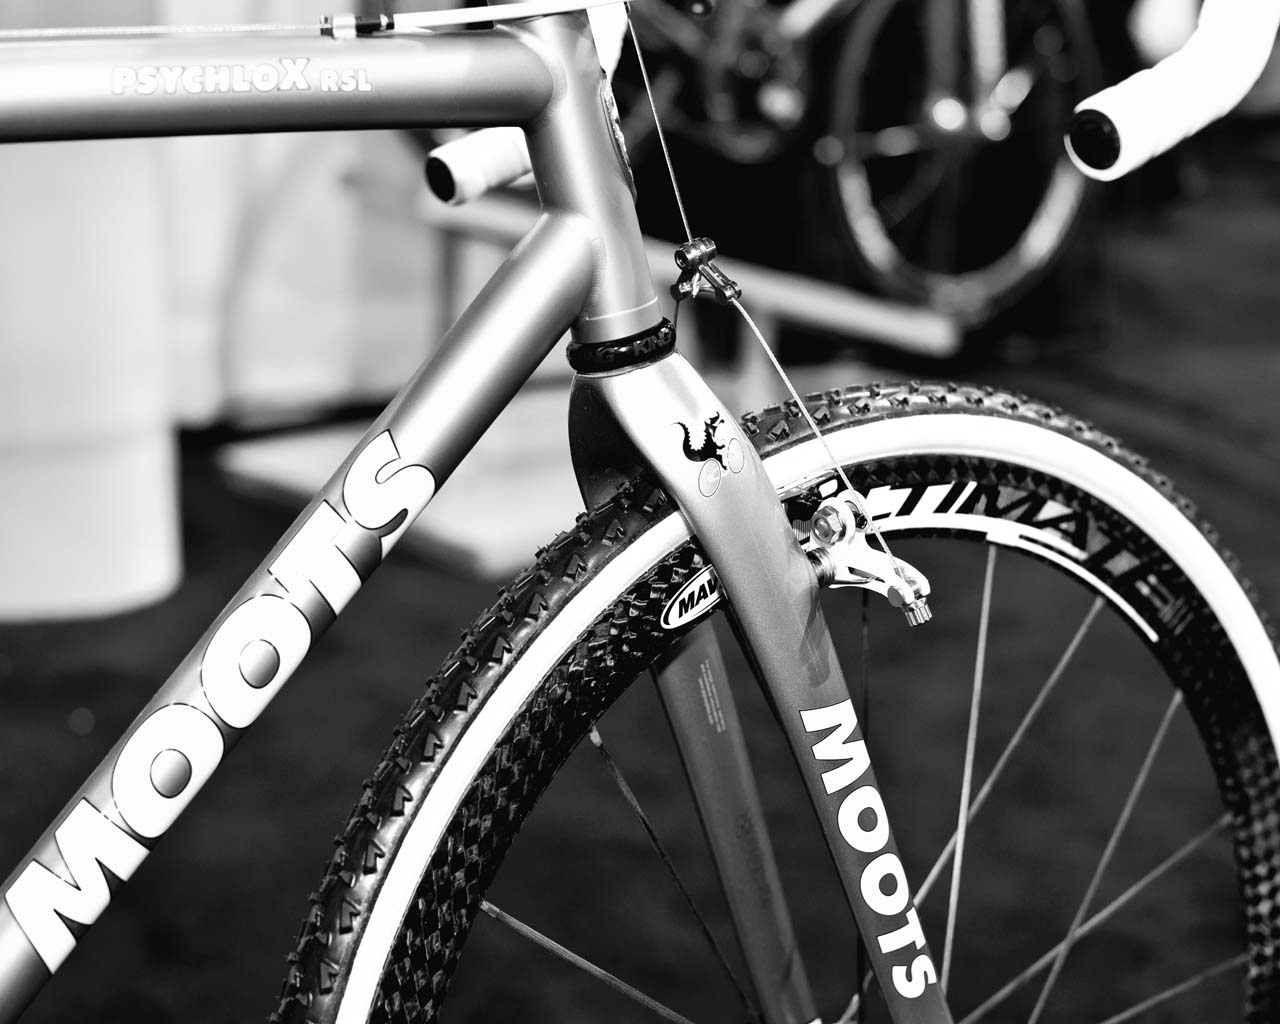 Moots PsychloX - always a pleasure to see again. ? Bill Schieken/www.cxhairs.com